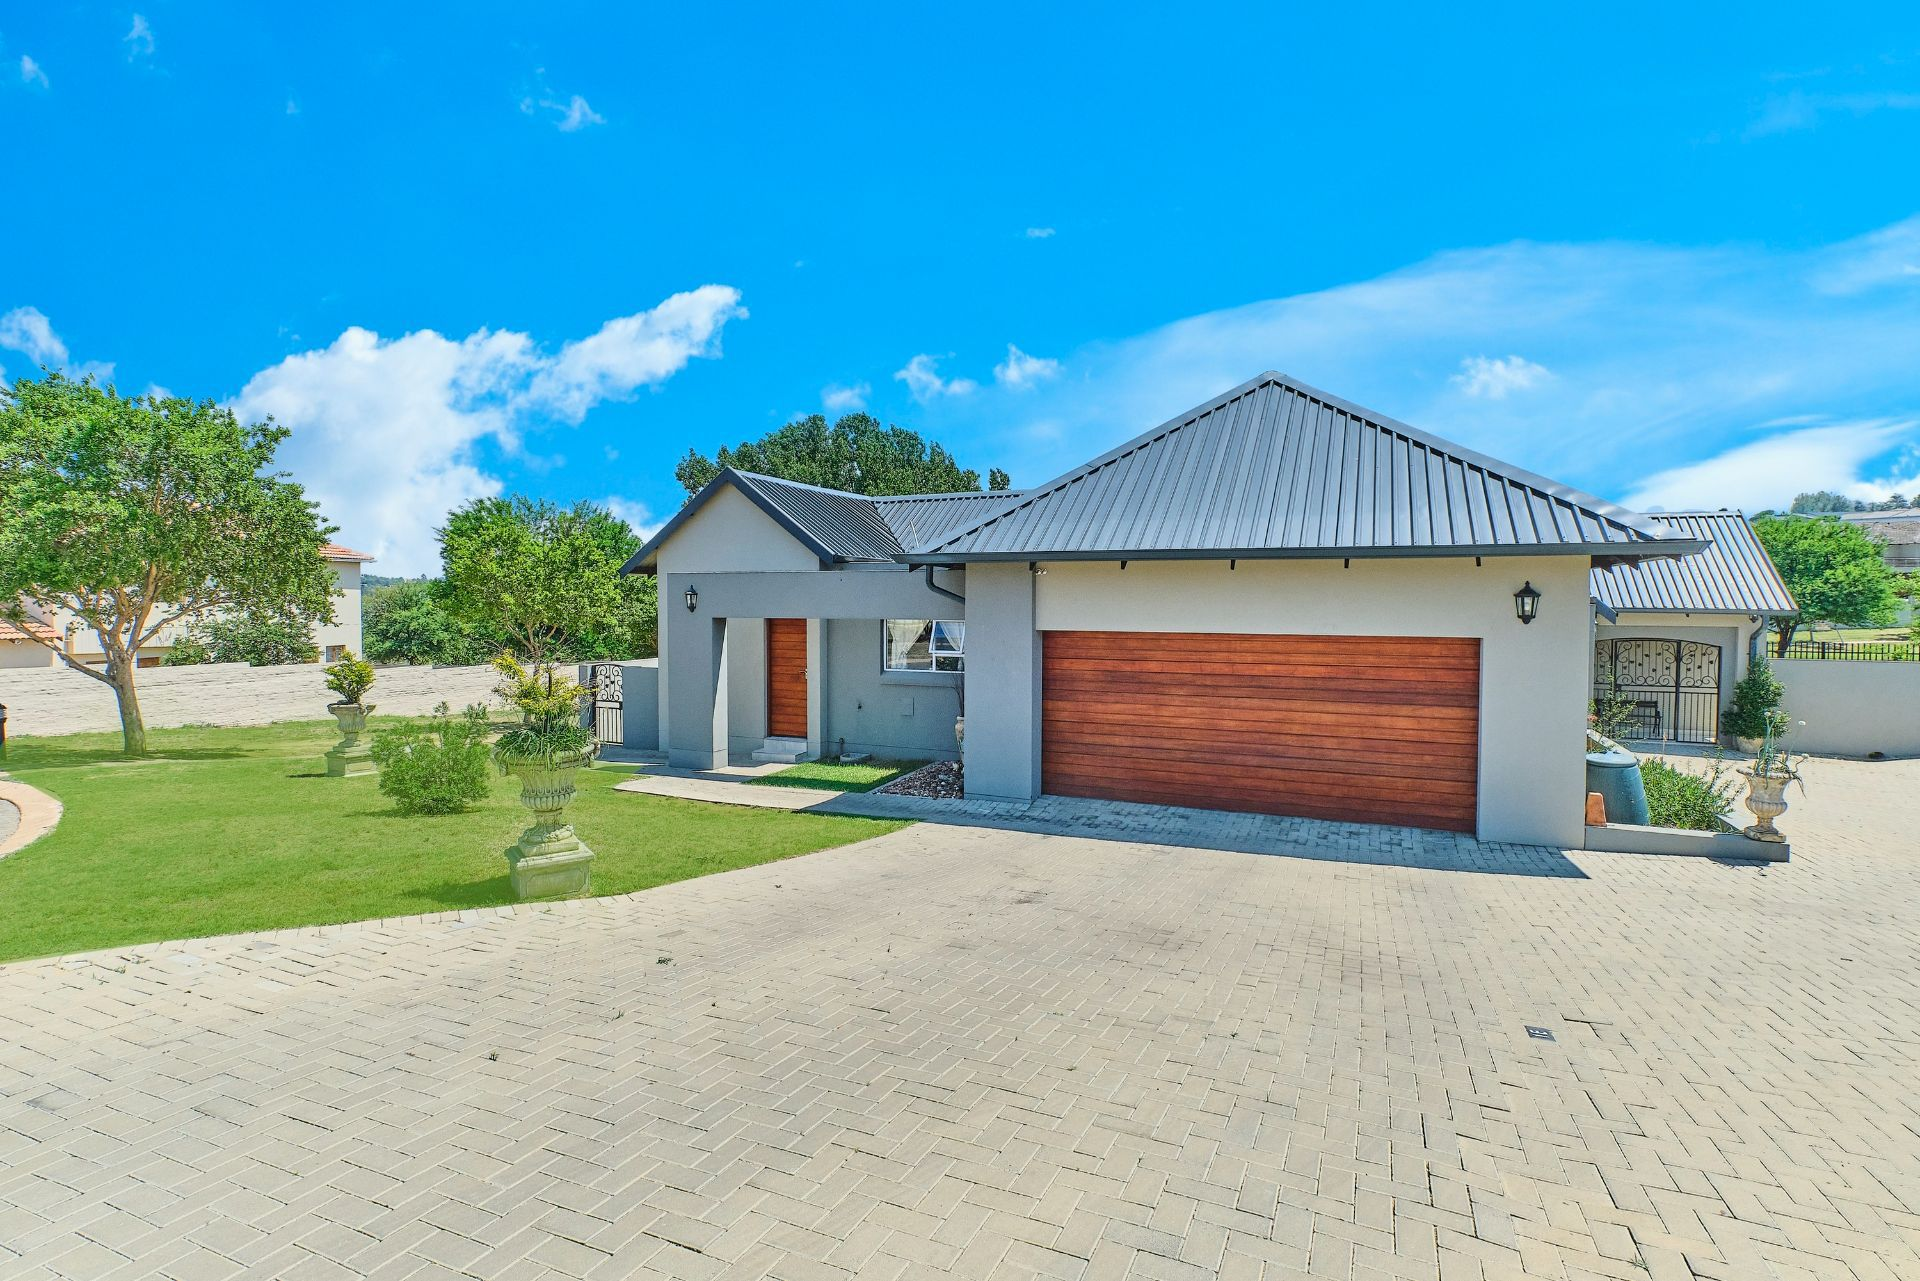 House in Maroeladal - 598 Cedar Creek - Gugu EVBA - L25.jpg